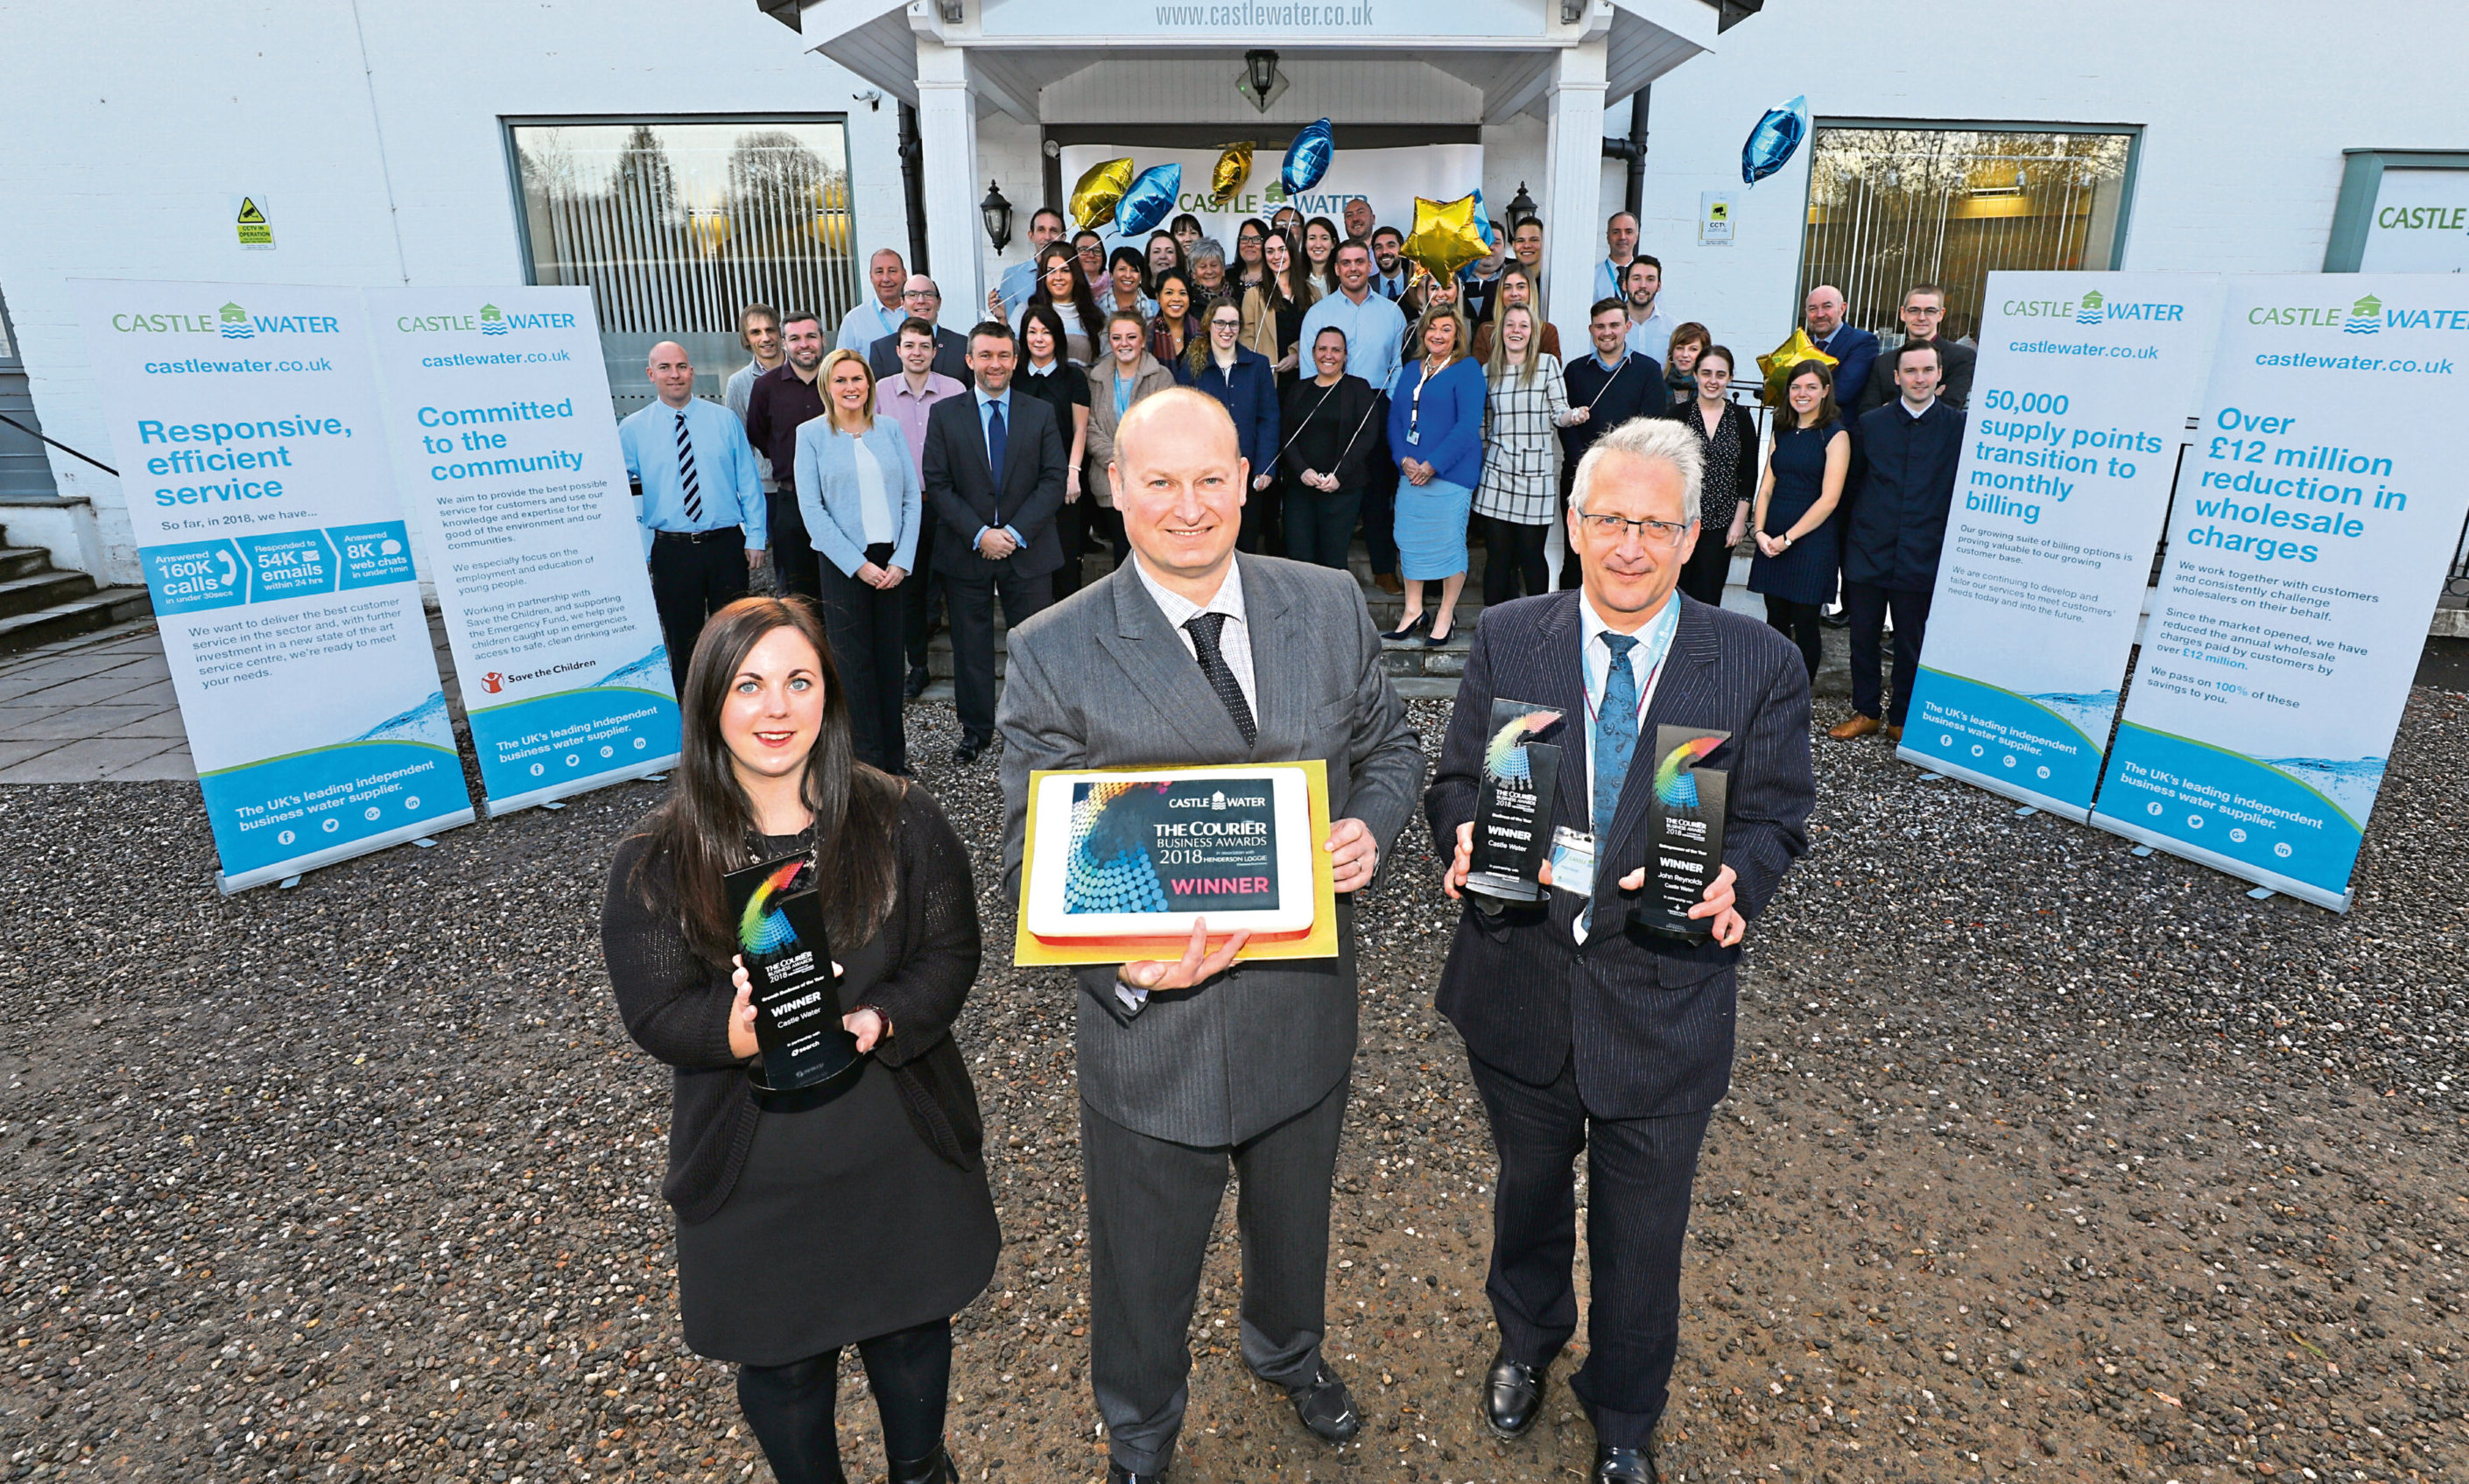 Mr Reynolds, front, centre, with a special cake, Laura Carr and Peter Strain, both holding the awards, and the firms staff. Picture: Dougie Nicolson.